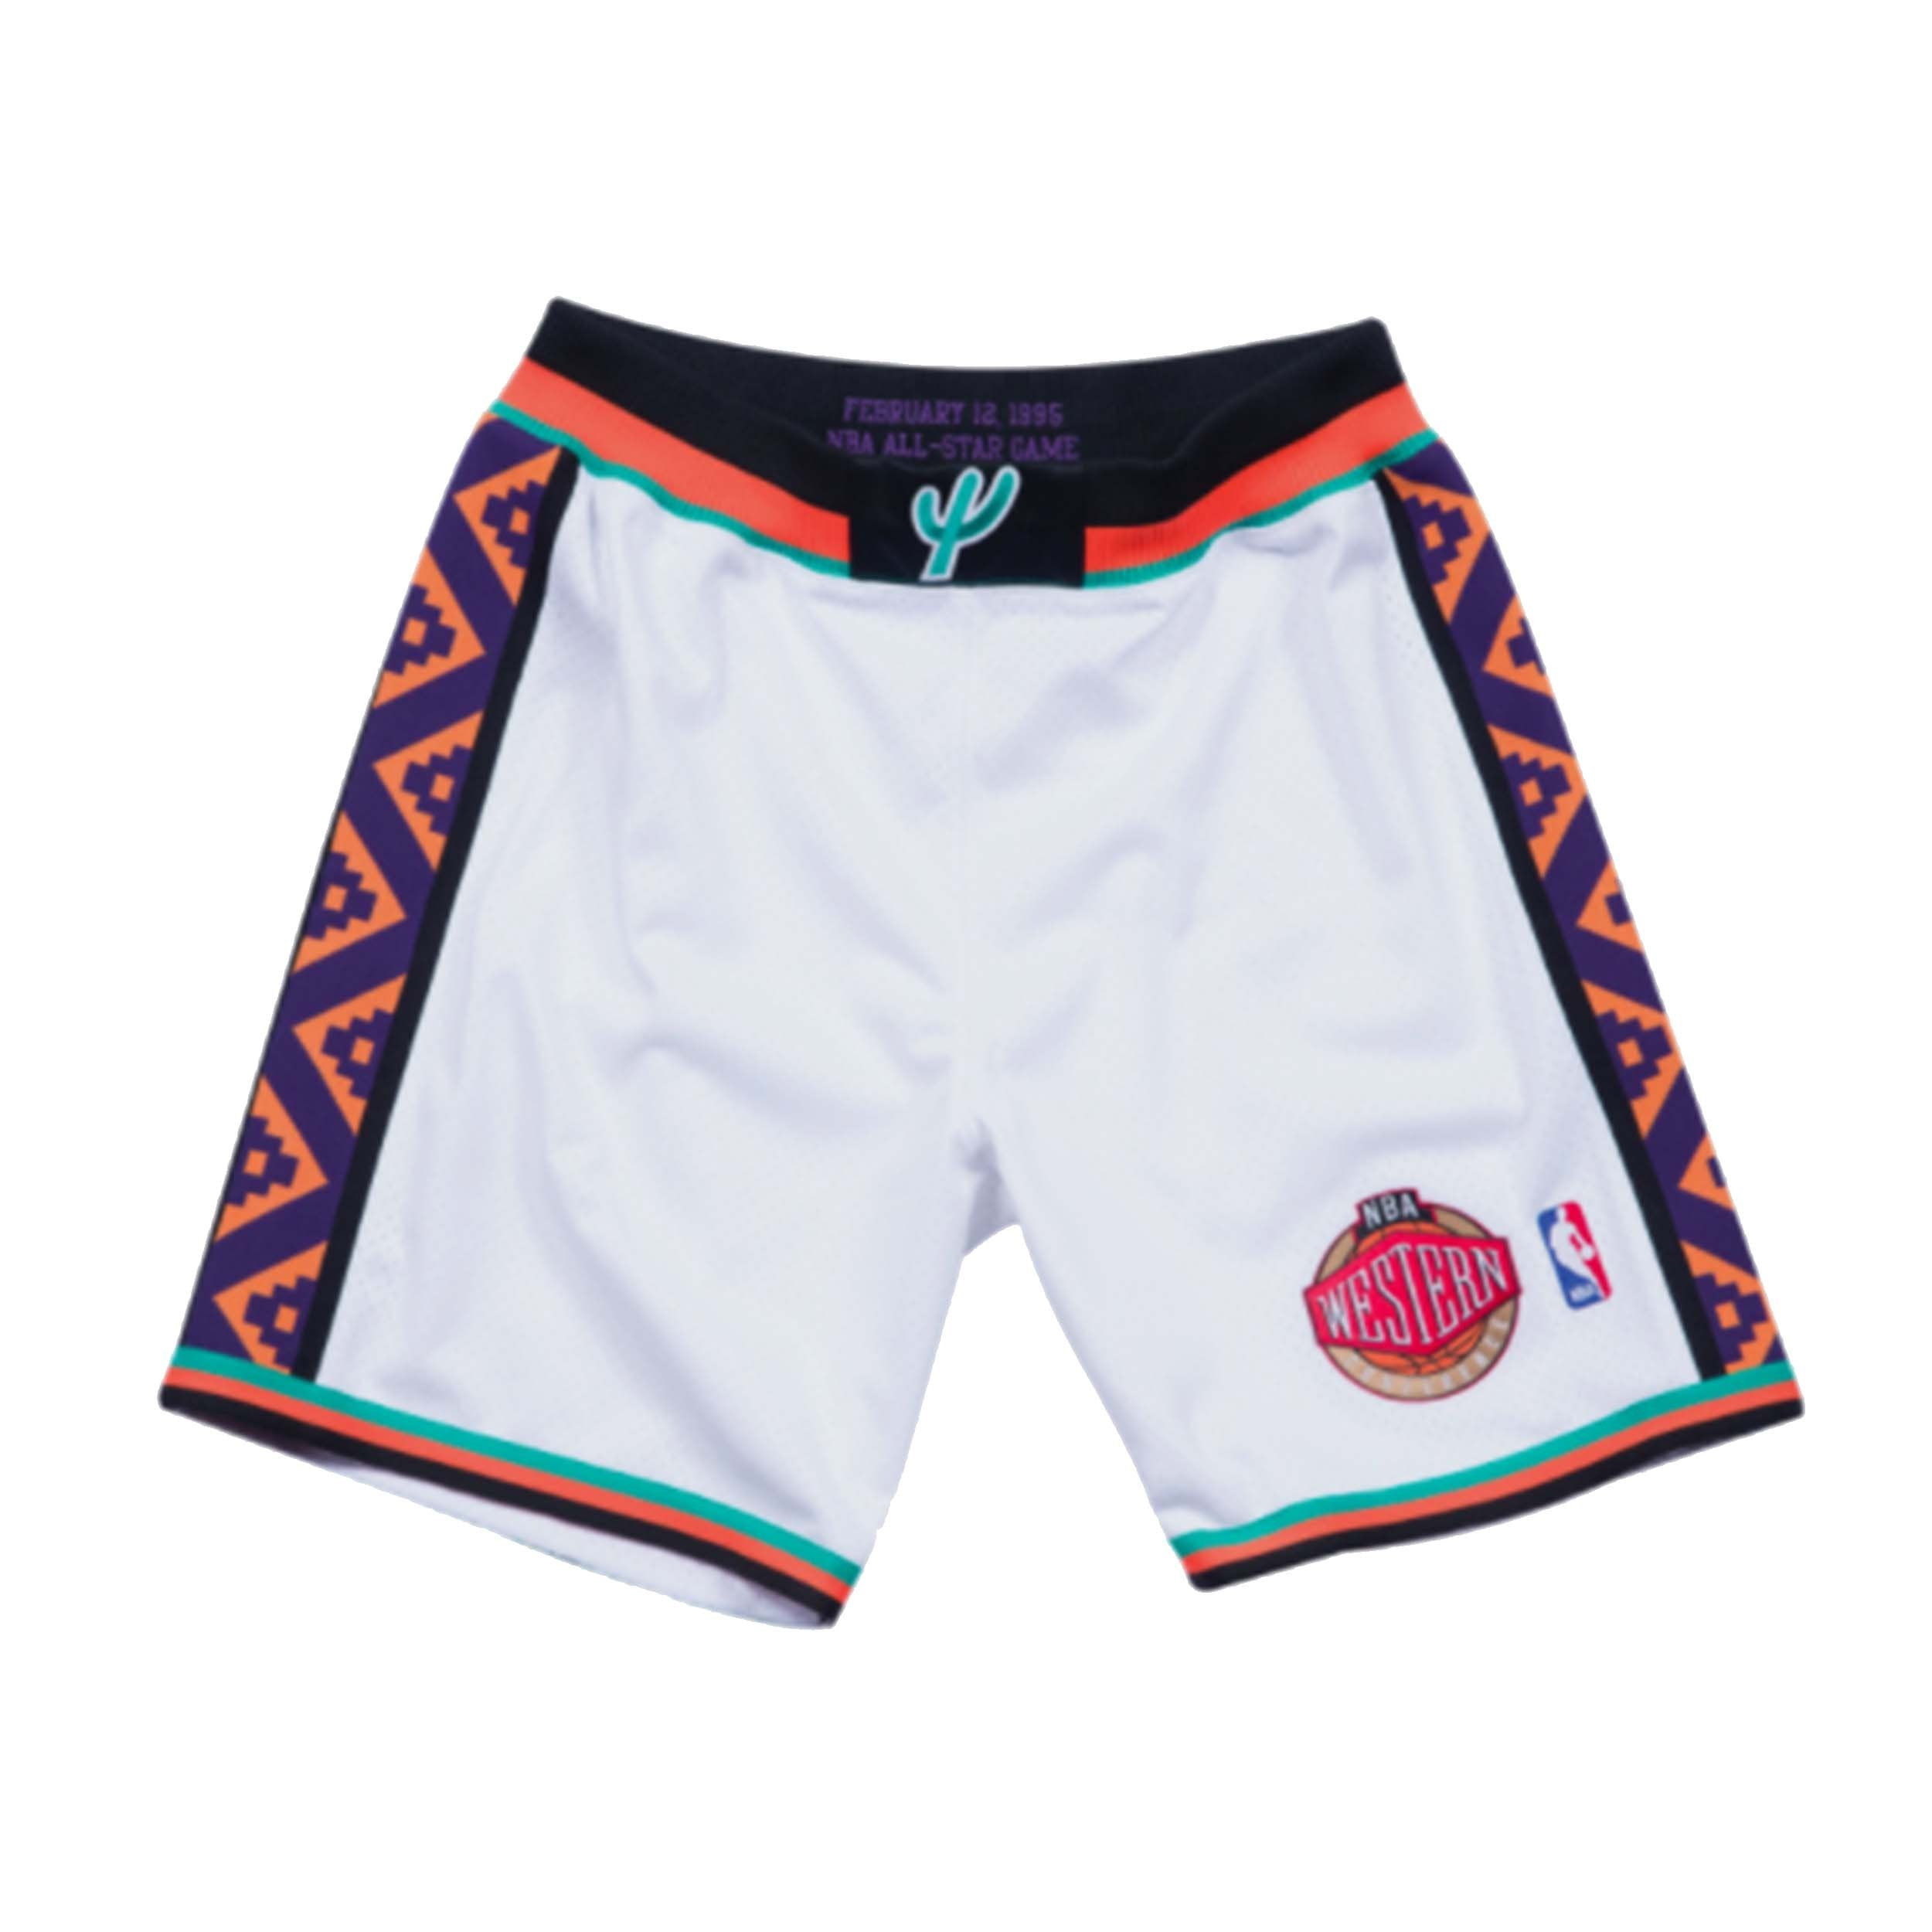 26d5ae6ff Mitchell & Ness 1995 All Star West Authentic Shorts